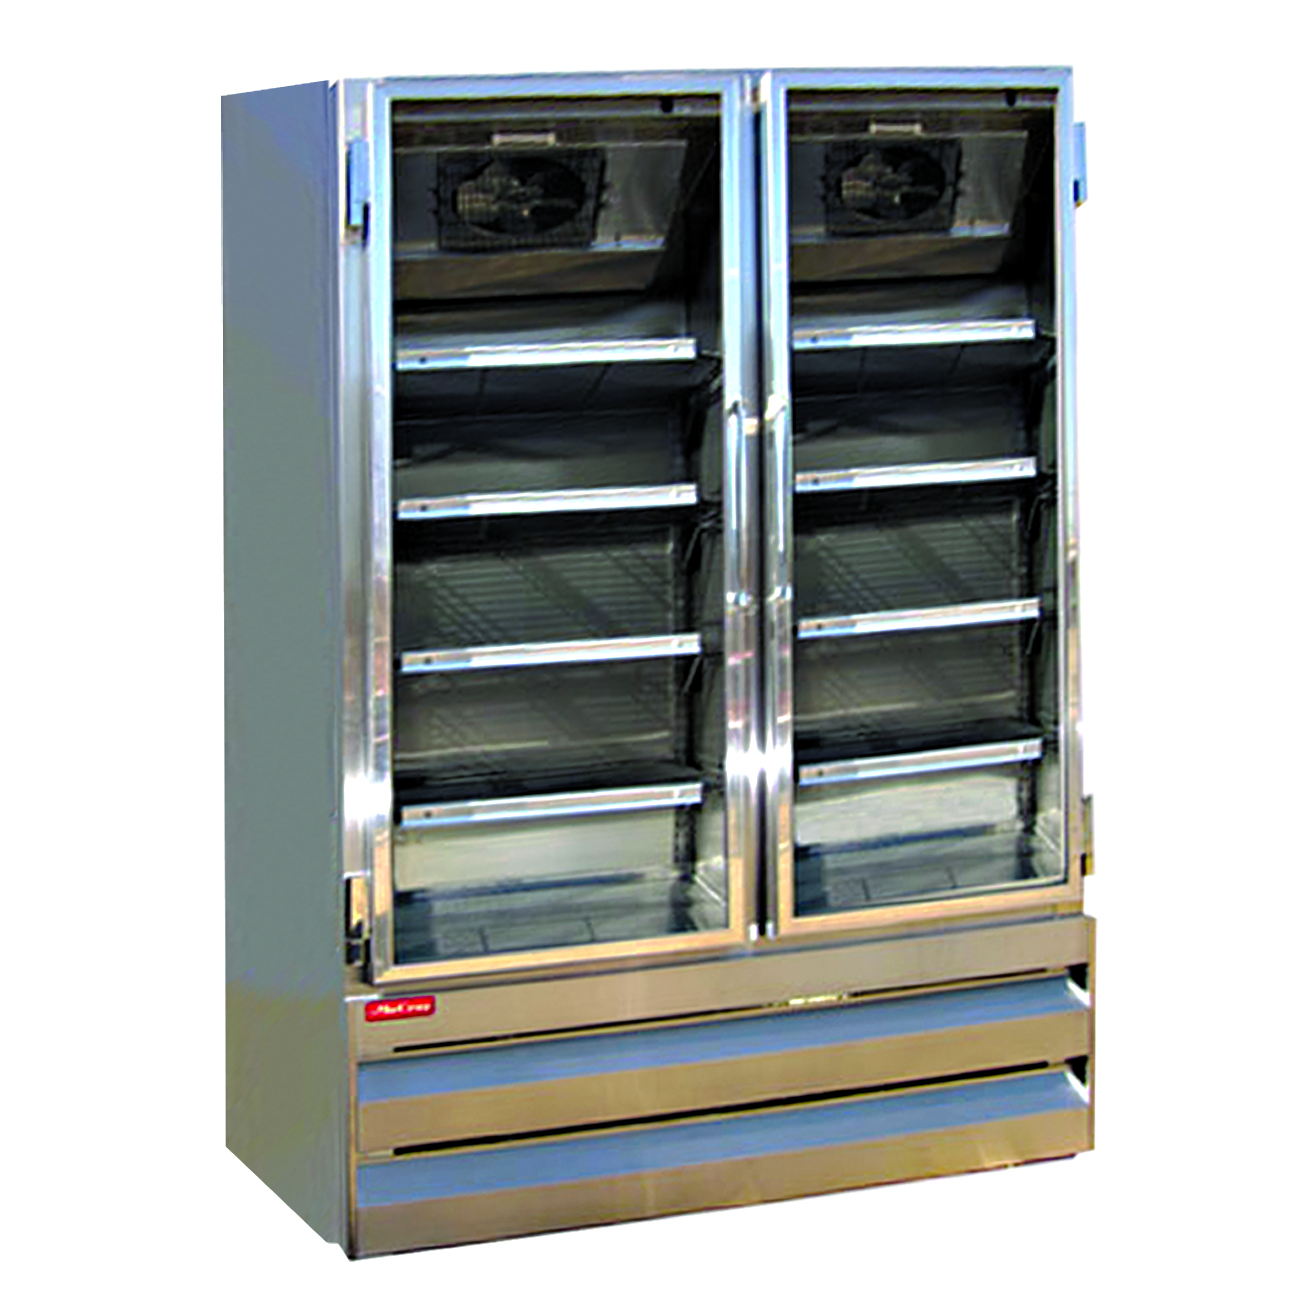 Howard-McCray GF42BM-S-FF freezer, merchandiser